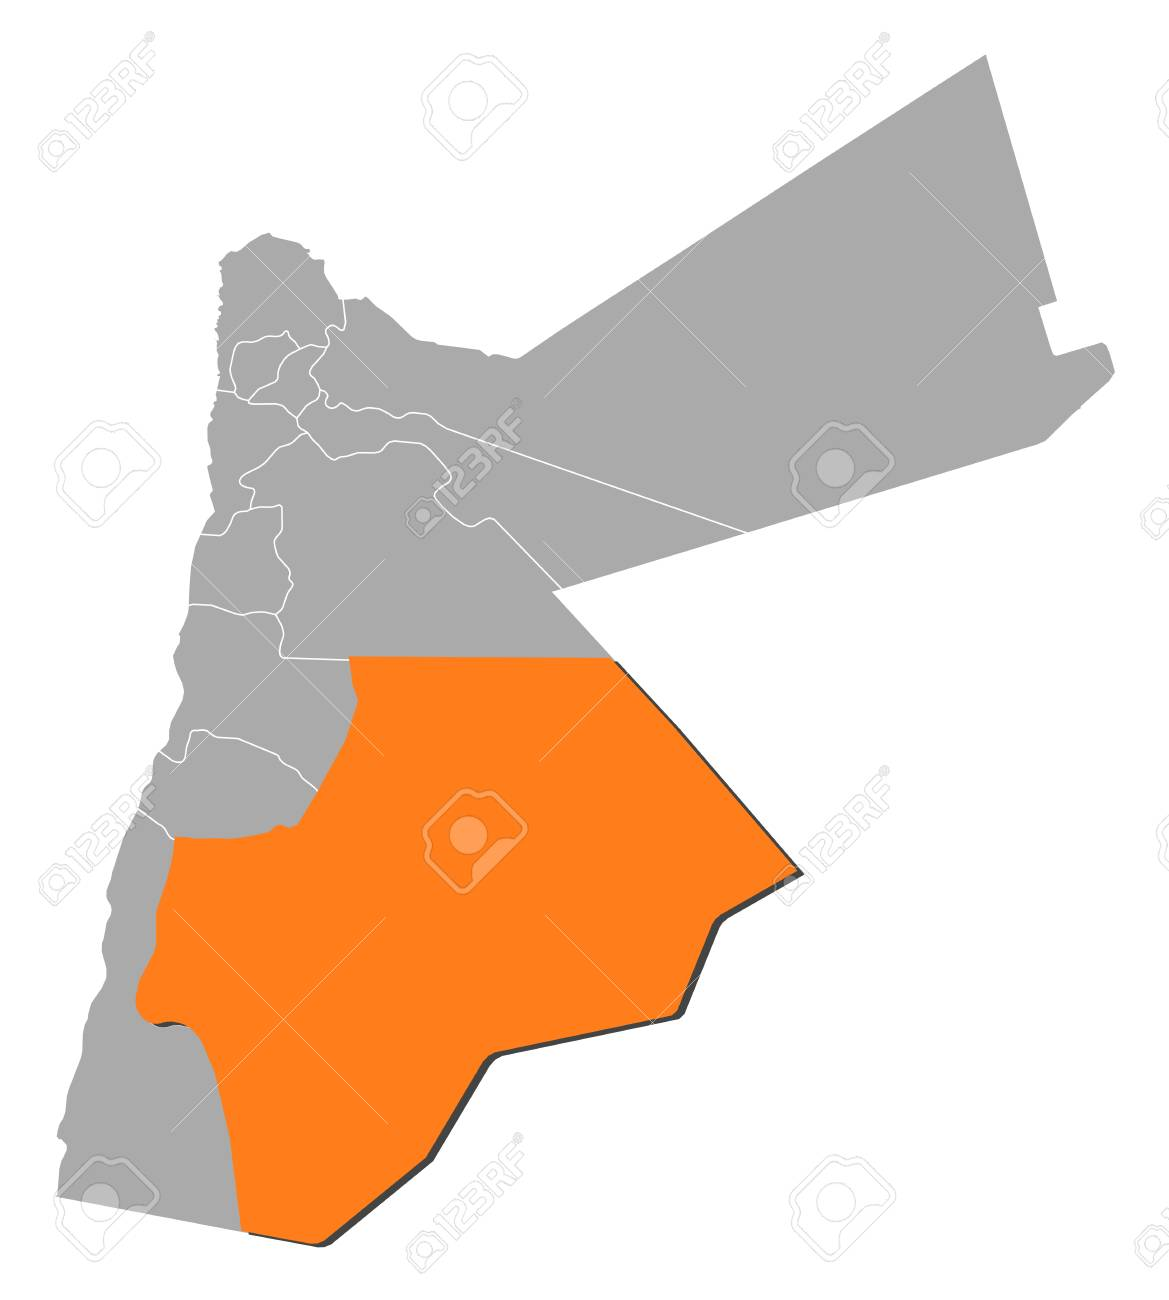 Political Map Of Jordan.Political Map Of Jordan With The Several Governorates Where Ma An